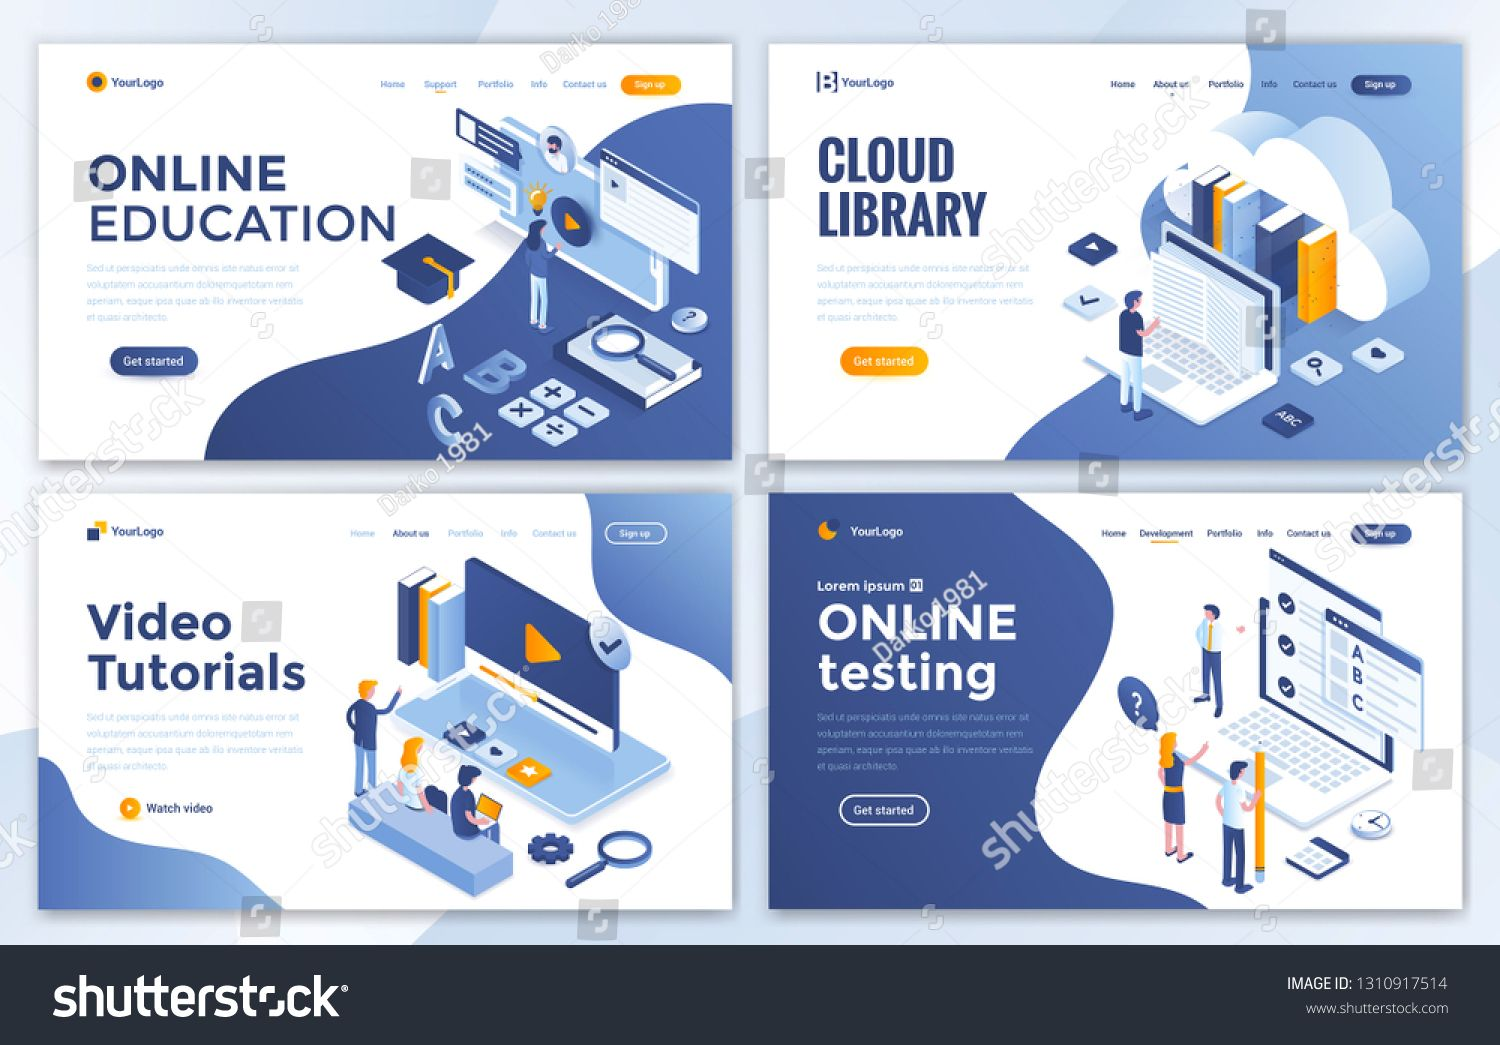 Set Of Landing Page Design Templates For Online Education Cloud Library Video Tutorials And Online Testing E Landing Page Web Development Design Page Design